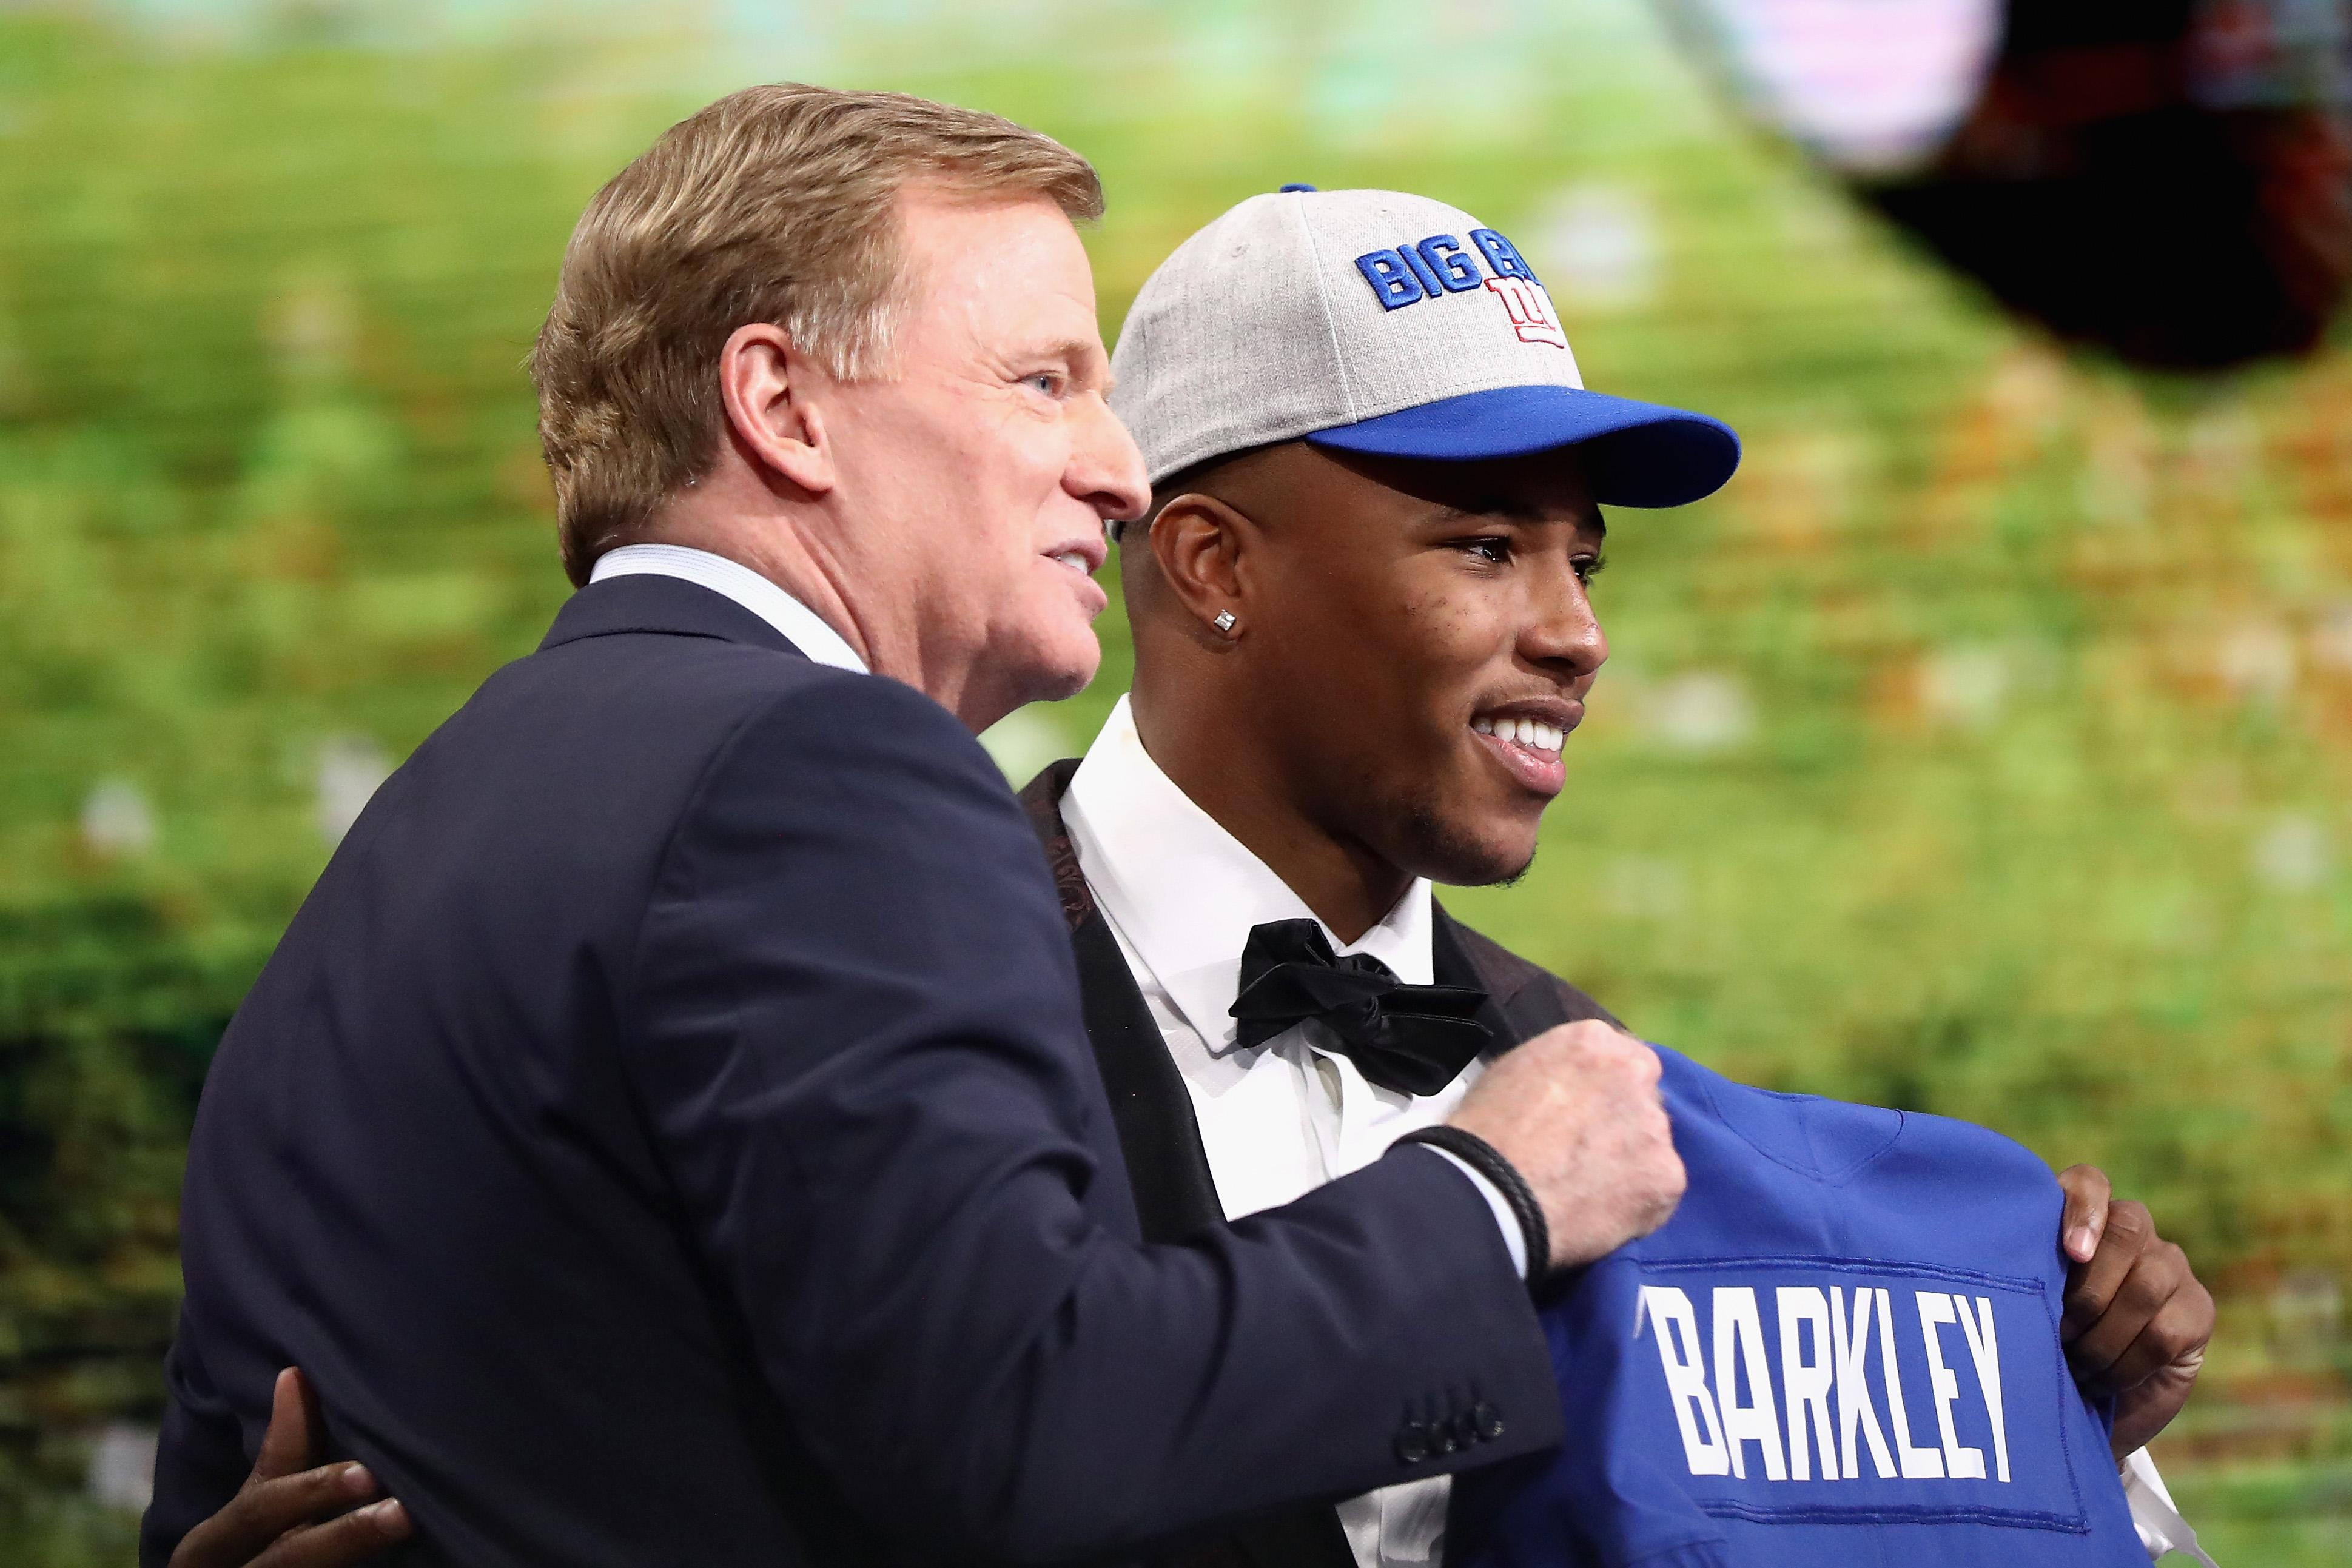 Saquon Barkley sets NFL draft jersey sales record after Giants pick ee42b958a